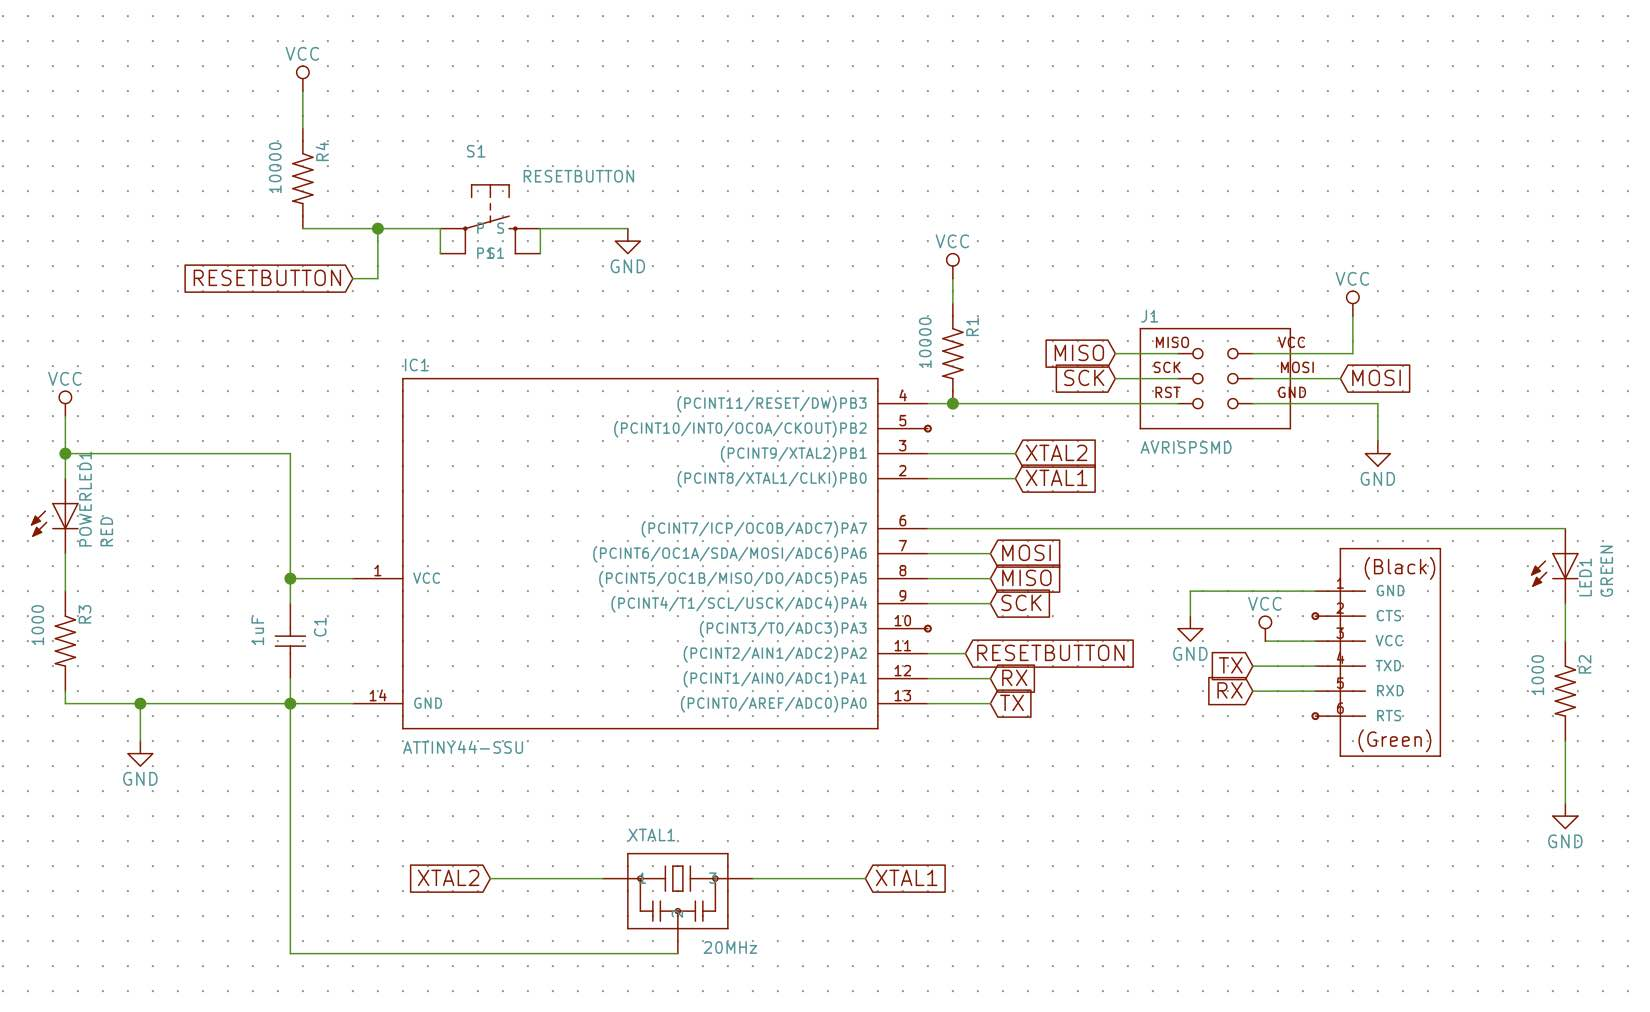 Week 06 Electronics Design Schematics Once We Have Included All The Components Listed Below Schematic Looks Like This